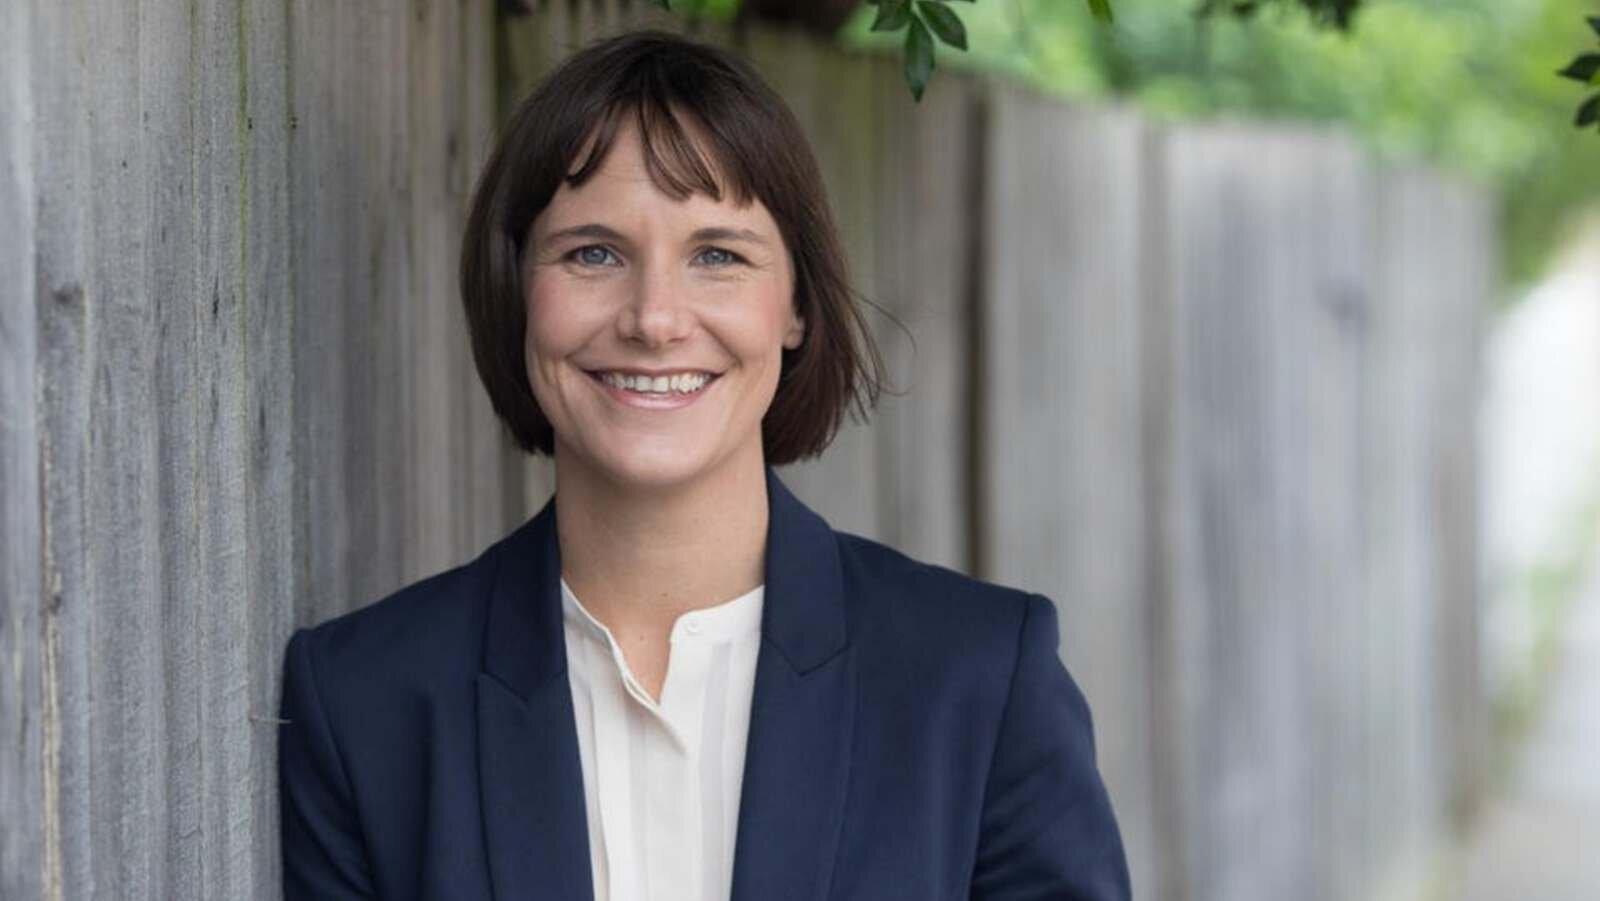 """""""Groundbreaking"""" winner at NSW Premier's history awards      Sydney Morning Herald    30 August, 2019  Meredith Lake, 2017 ADM Senior Research Fellow, has won the NSW Premier's Australian History Prize."""